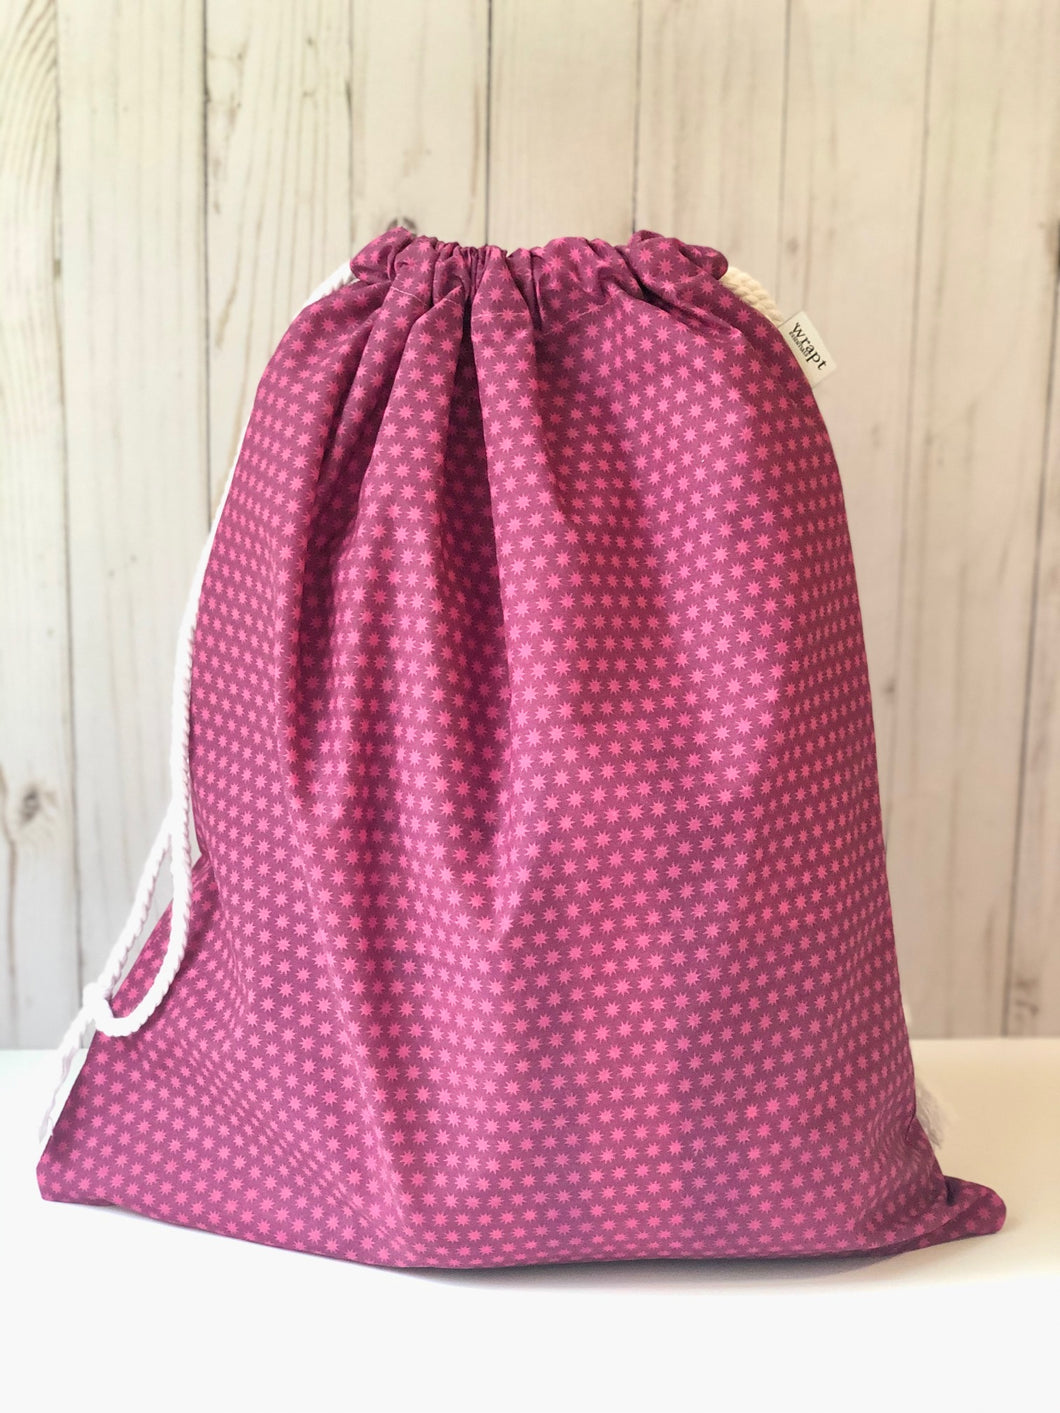 Pink Starburst Drawstring Gift Bag